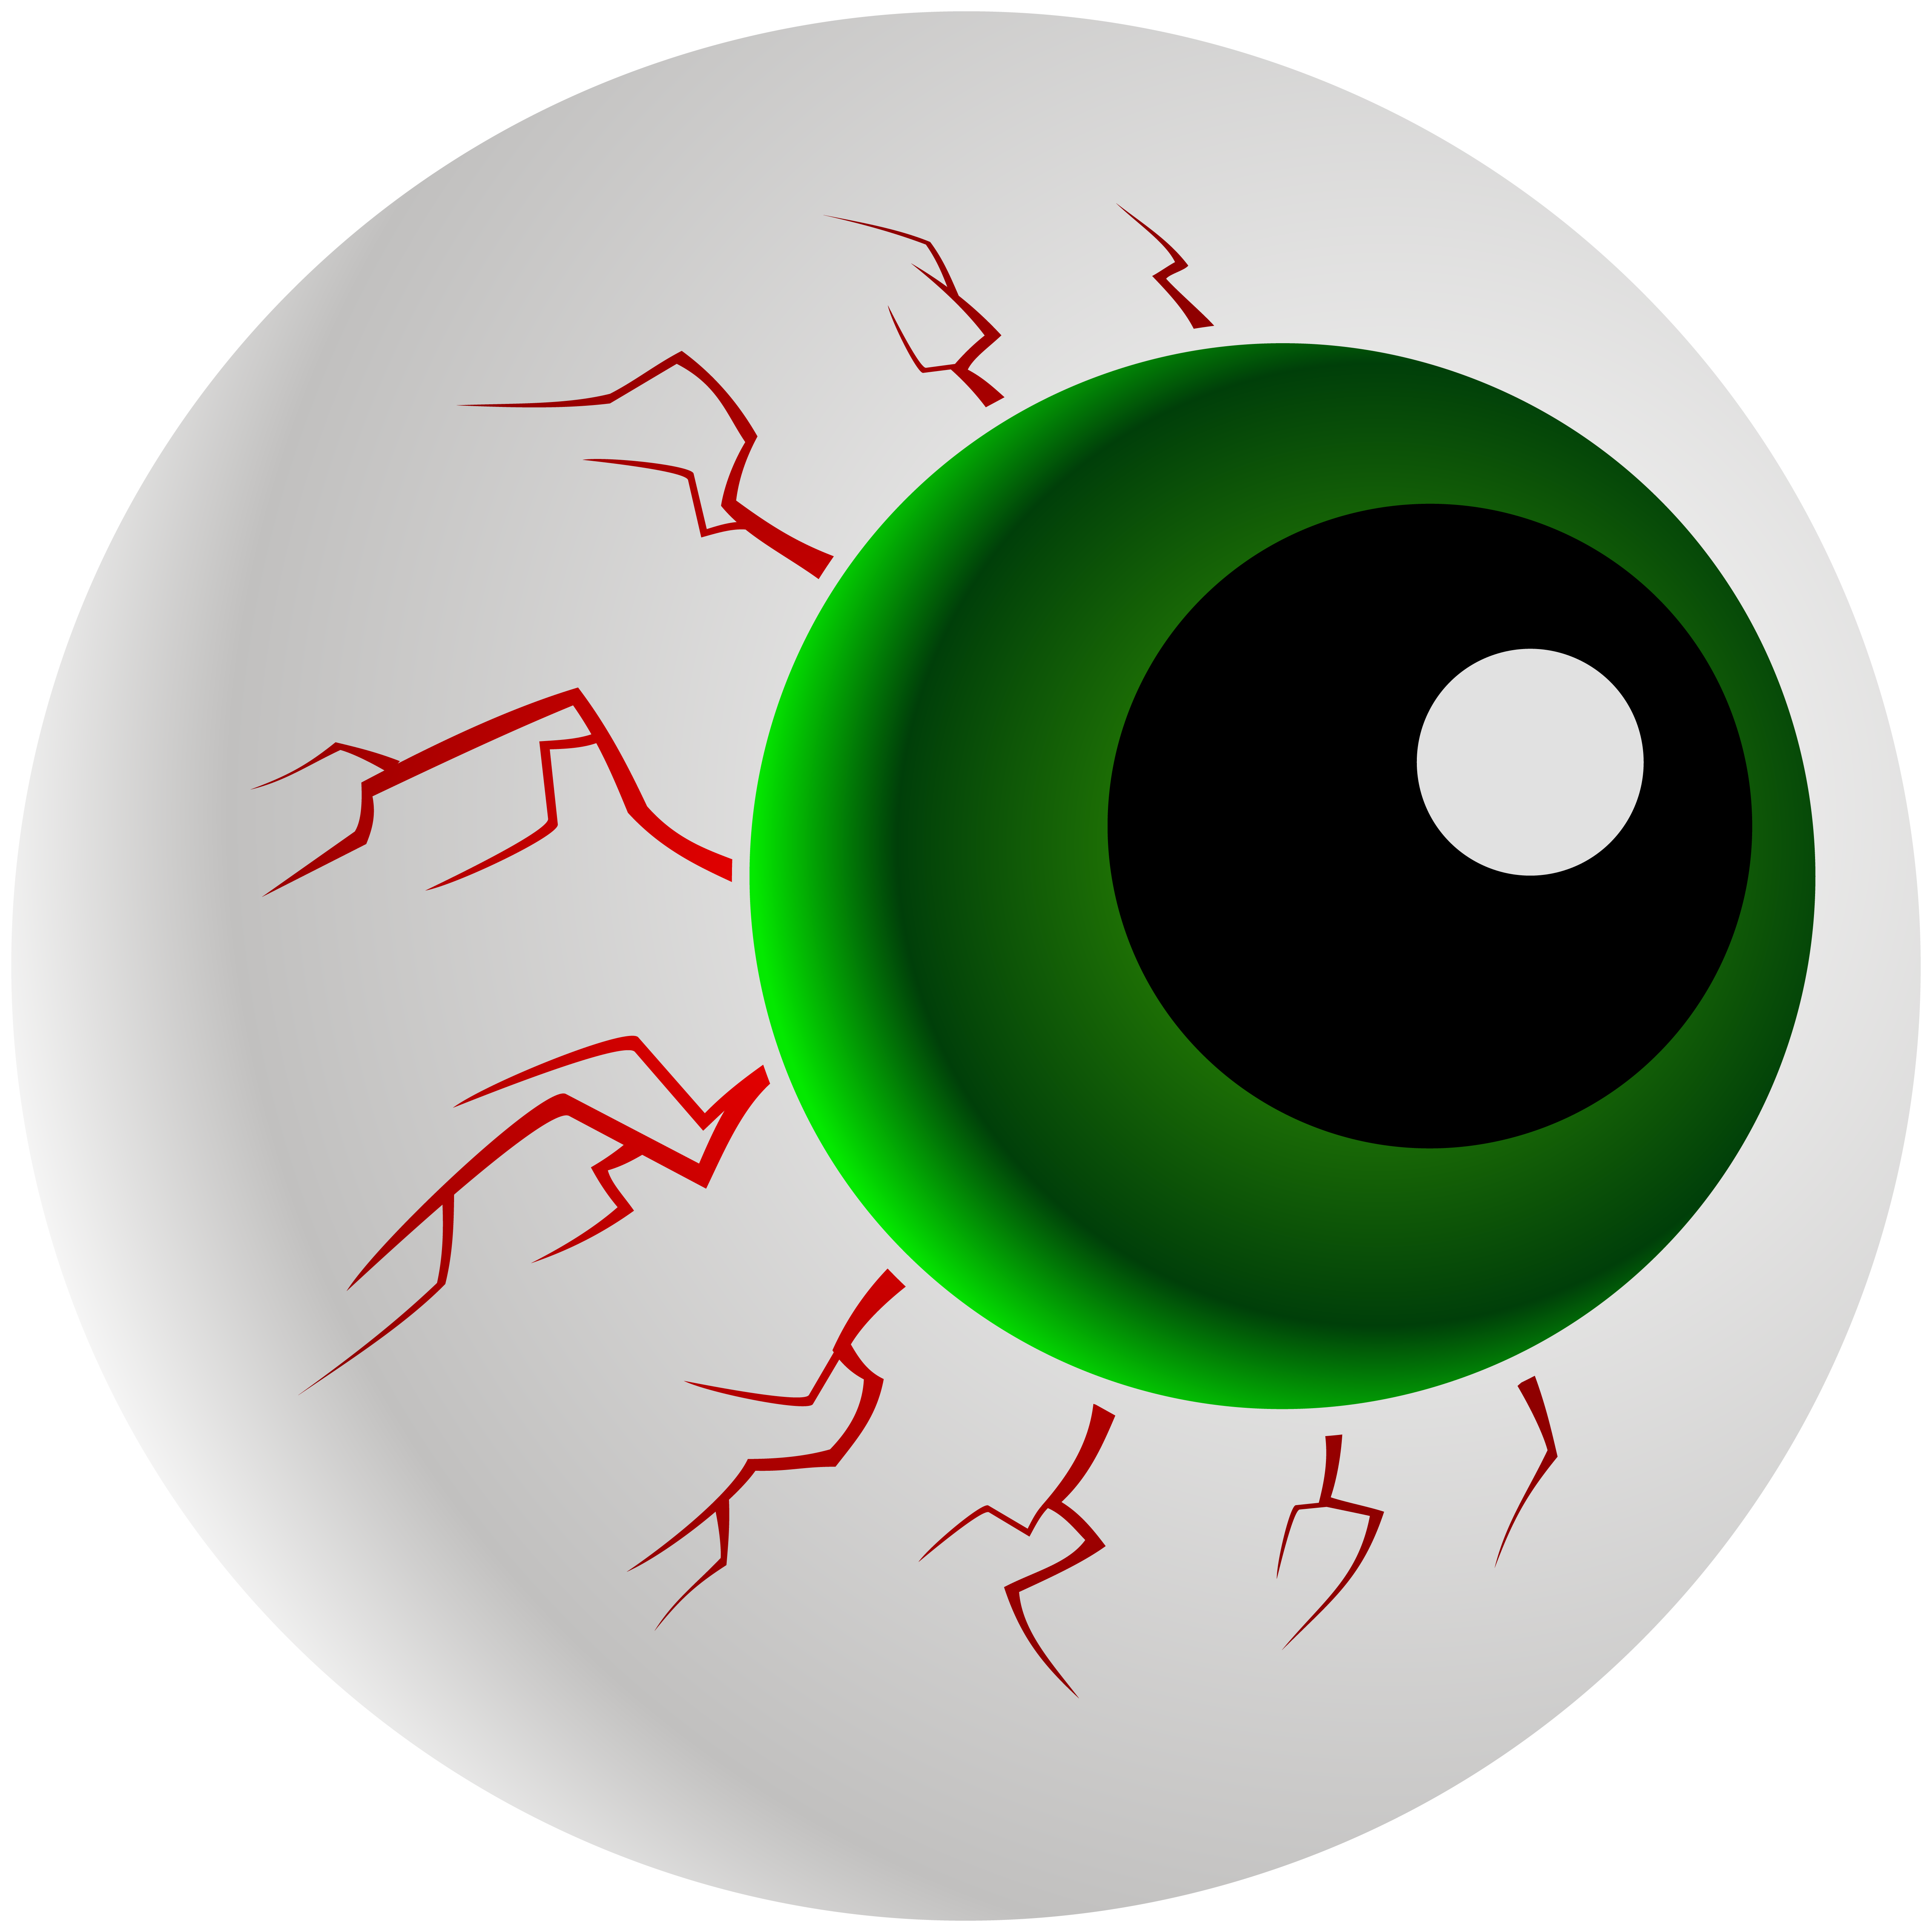 Eyeball clipart png. Giant image gallery yopriceville